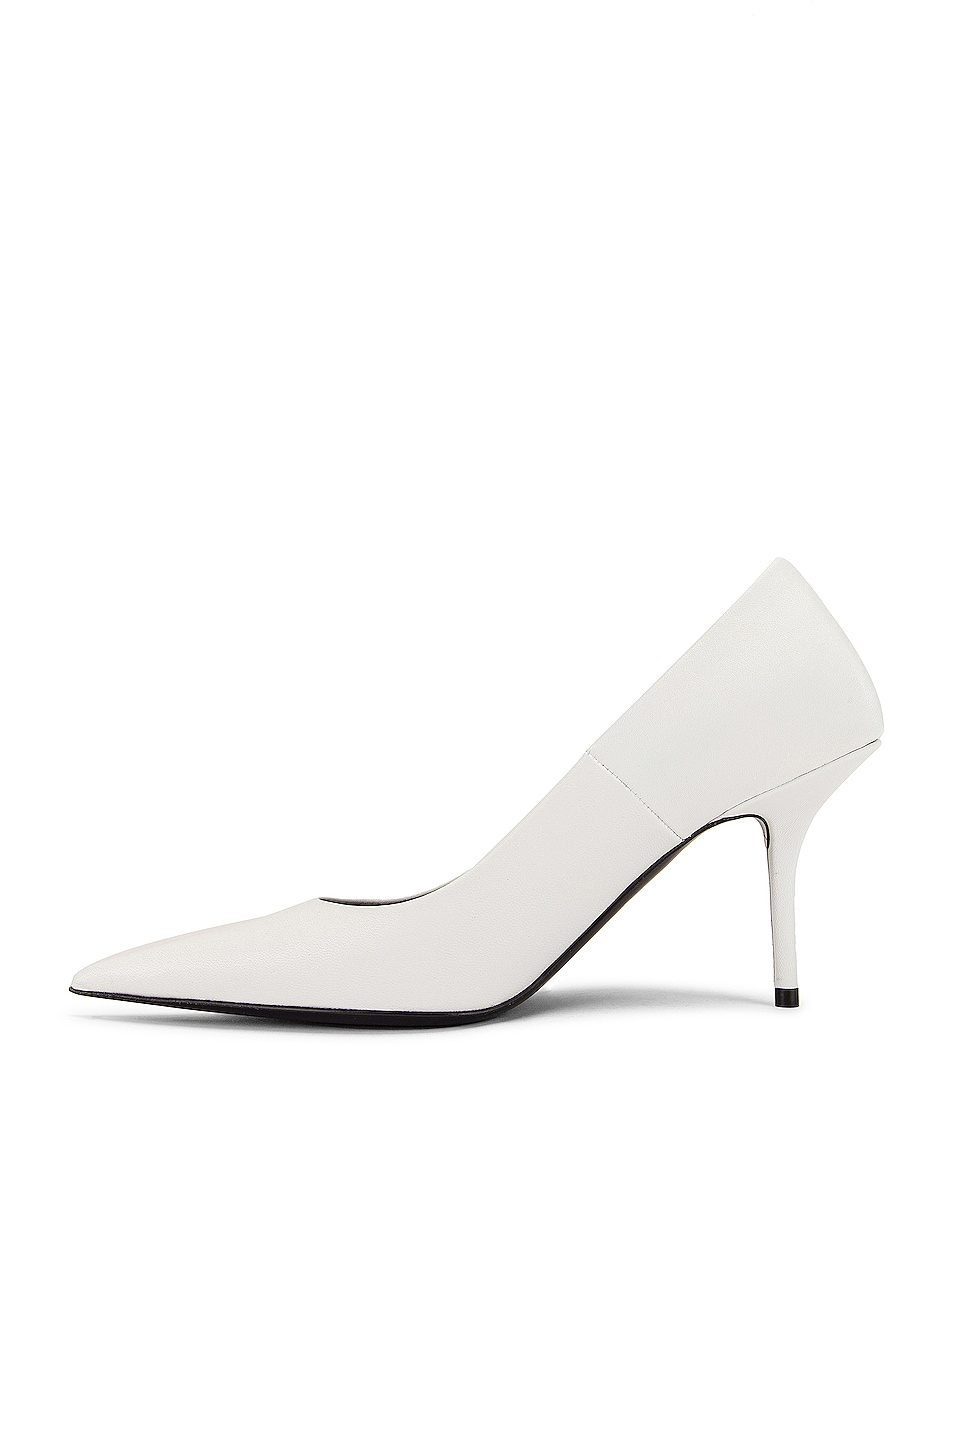 Image 5 of Balenciaga Square Knife Pumps in White